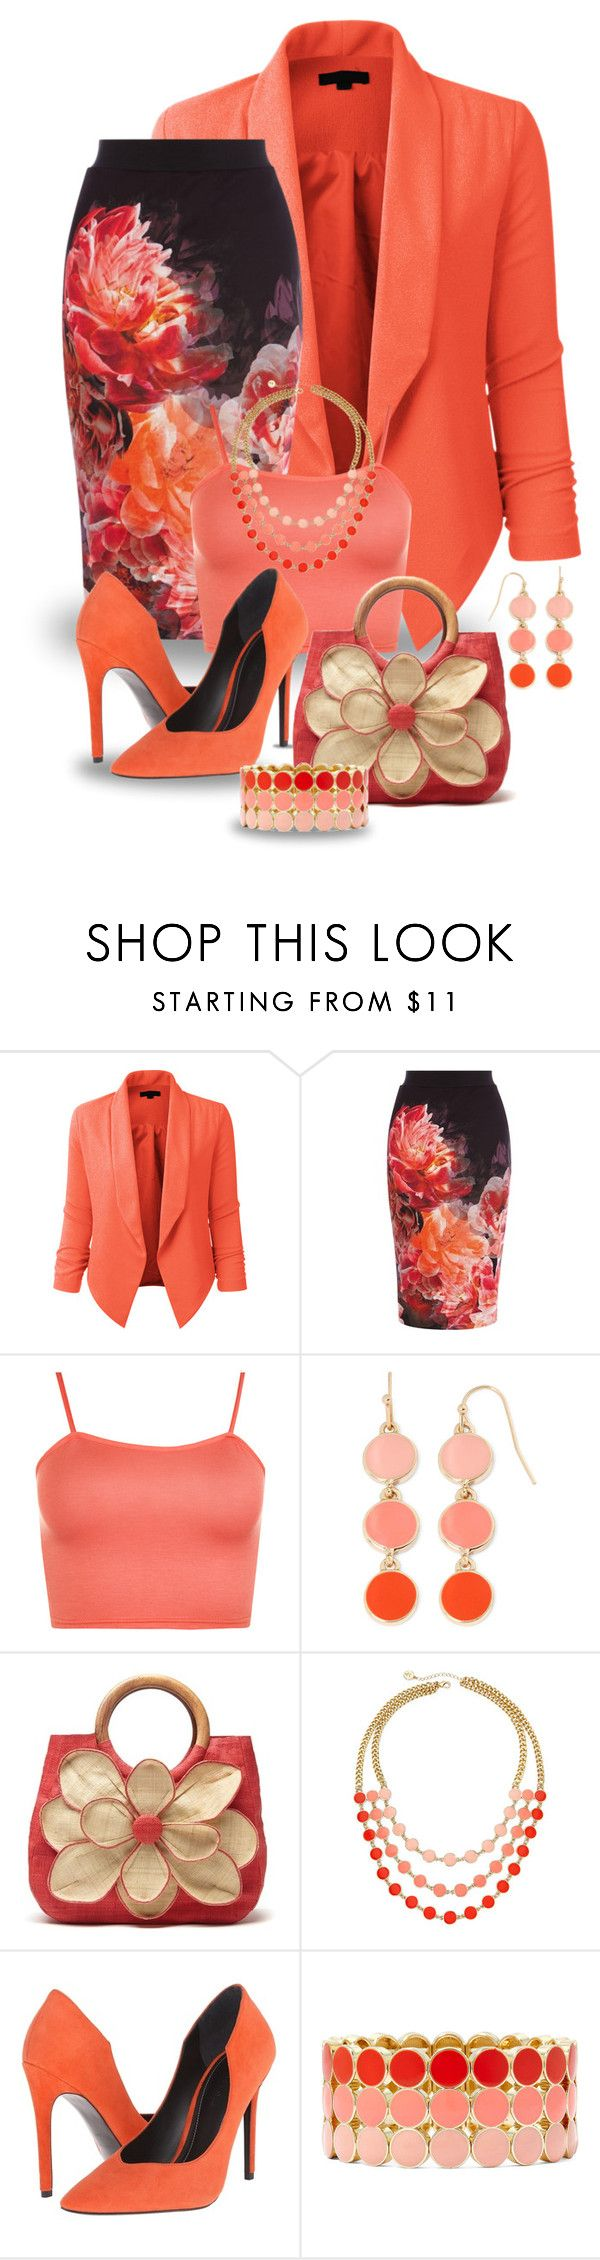 """Spring Brights!"" by maryv-1 ❤ liked on Polyvore featuring LE3NO, Coast, WearAll, Liz Claiborne, Mar y Sol and Kendall + Kylie"